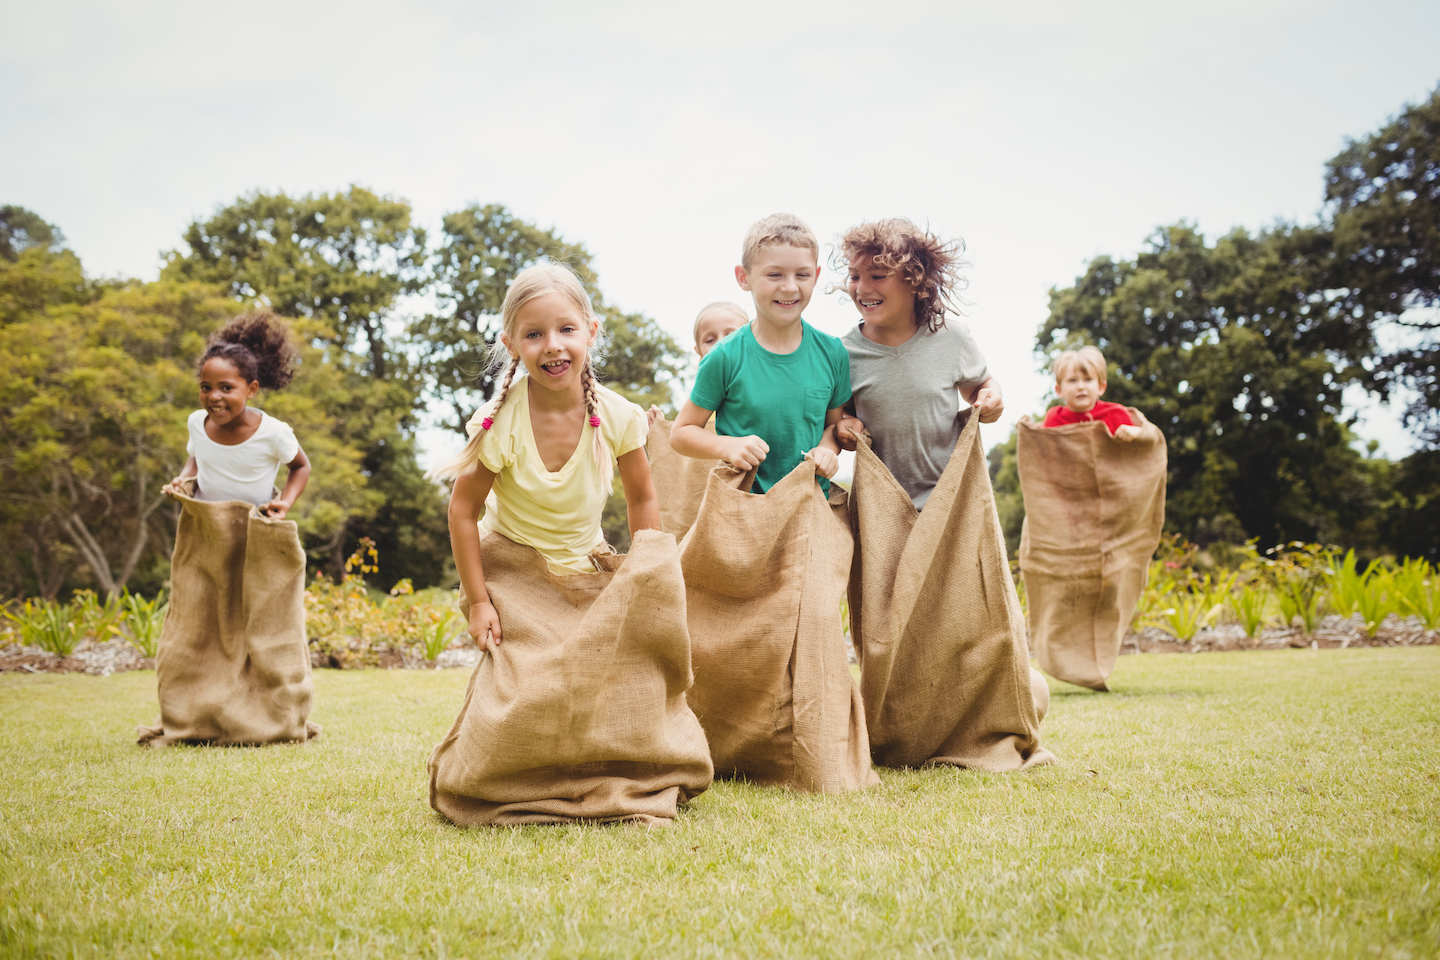 Children,Having,A,Sack,Race,In,Park,On,A,Sunny